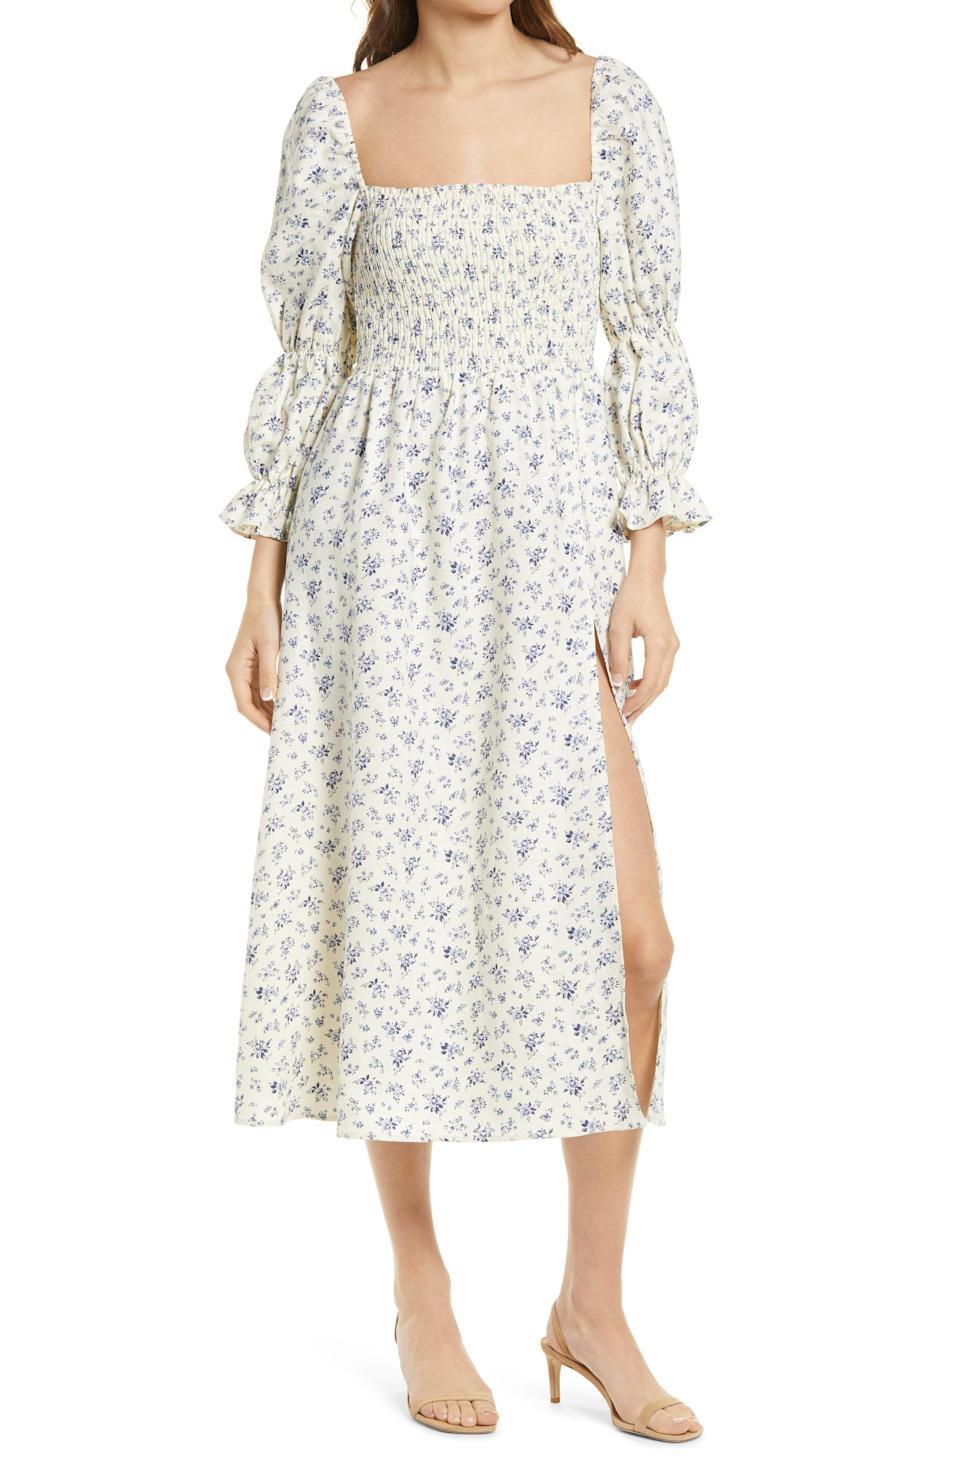 "<p><strong>Reformation</strong></p><p>nordstrom.com</p><p><strong>$278.00</strong></p><p><a href=""https://go.redirectingat.com?id=74968X1596630&url=https%3A%2F%2Fwww.nordstrom.com%2Fs%2Freformation-hyland-smocked-puff-sleeve-dress%2F5918395&sref=https%3A%2F%2Fwww.townandcountrymag.com%2Fstyle%2Ffashion-trends%2Fg35984730%2Fbest-smocked-dresses-women%2F"" rel=""nofollow noopener"" target=""_blank"" data-ylk=""slk:Shop Now"" class=""link rapid-noclick-resp"">Shop Now</a></p><p>Take your cottagecore obsession to the next level this spring with a floral smocked frock from Reformation. At first glance, this dress may look demure, but a side slit add just a little sex appeal. </p>"